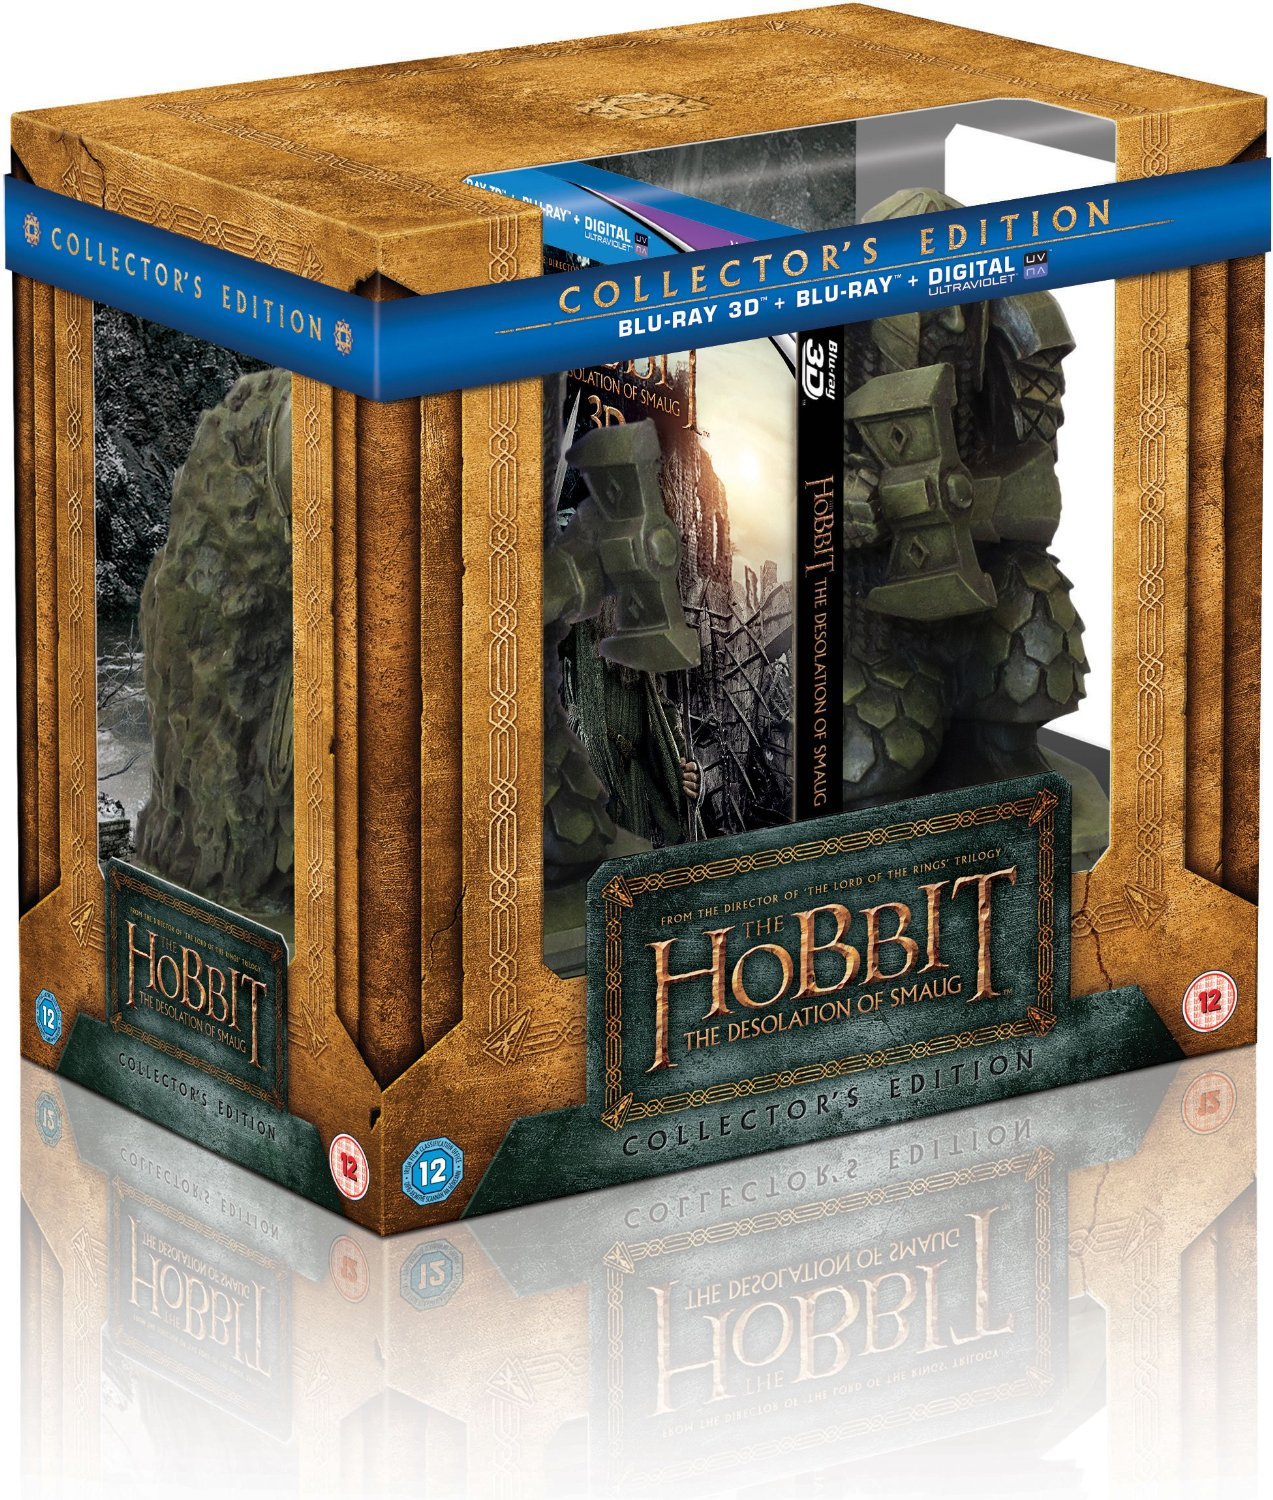 The hobbit the desolation of smaug is getting a fine looking 39 book end 39 limited edition - Hobbit book ends ...